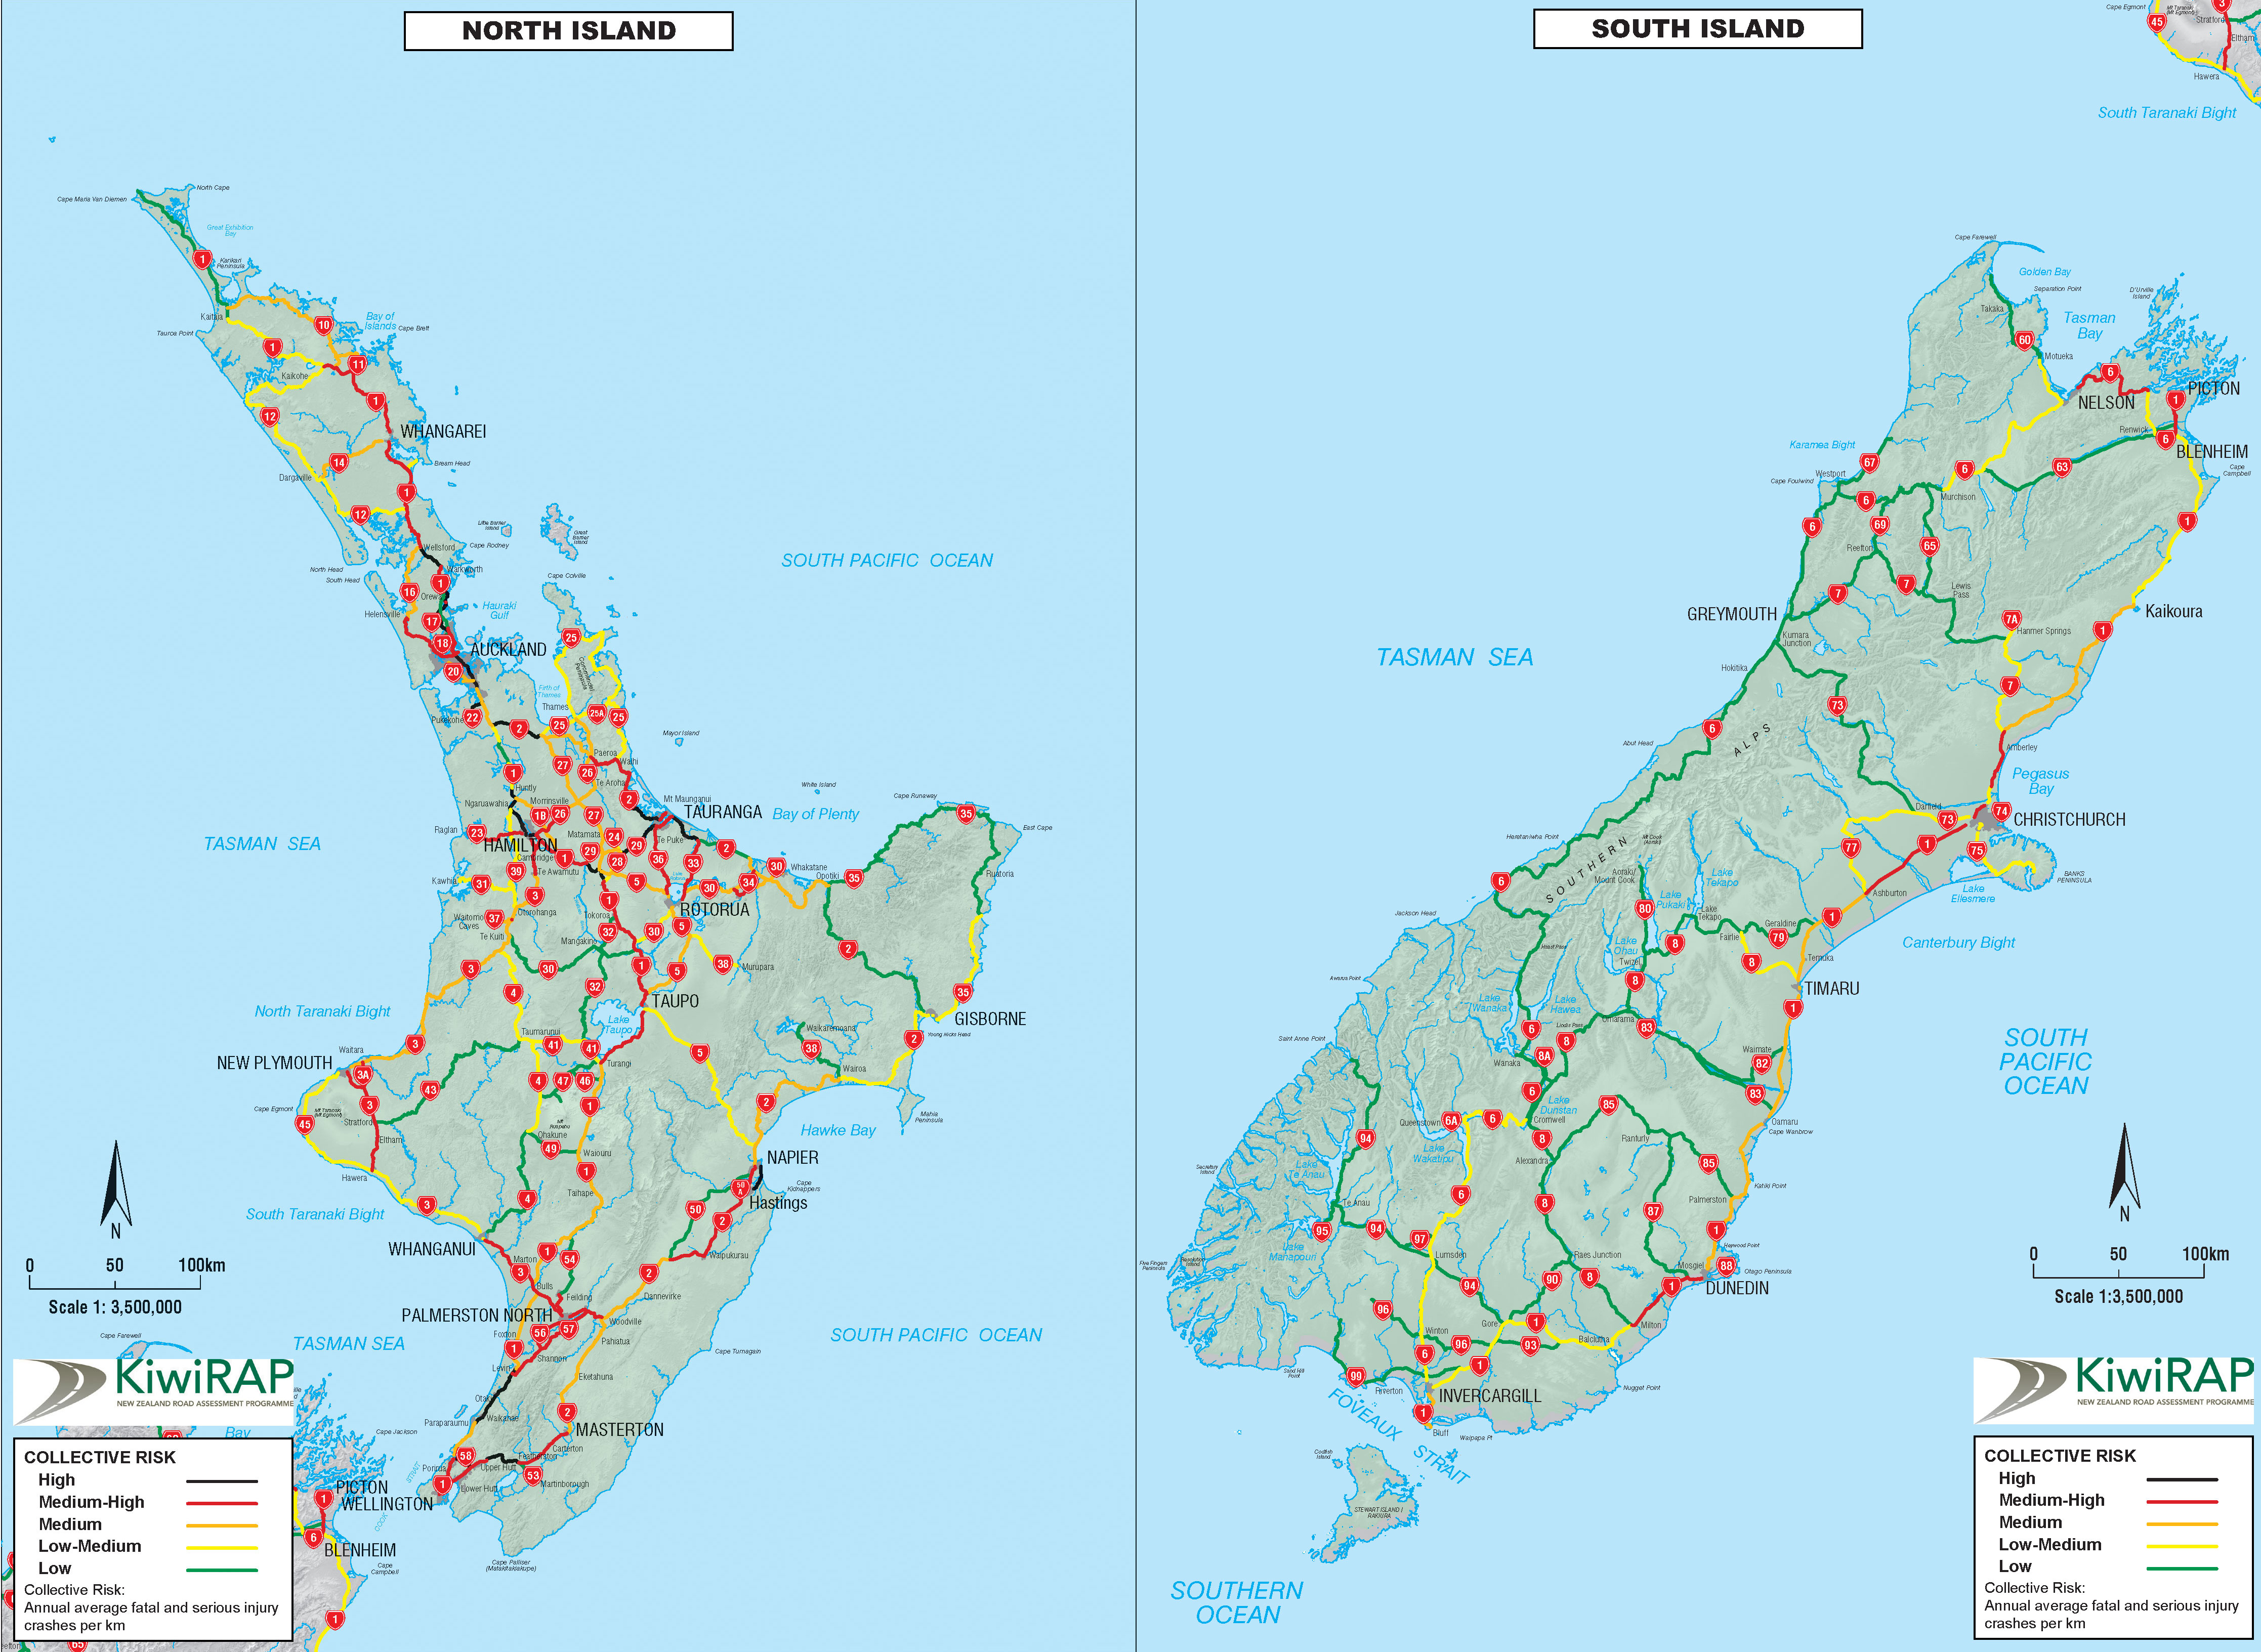 New Zealand Driving Map.Download Risk Maps Star Rating And Performance Tracking Reports